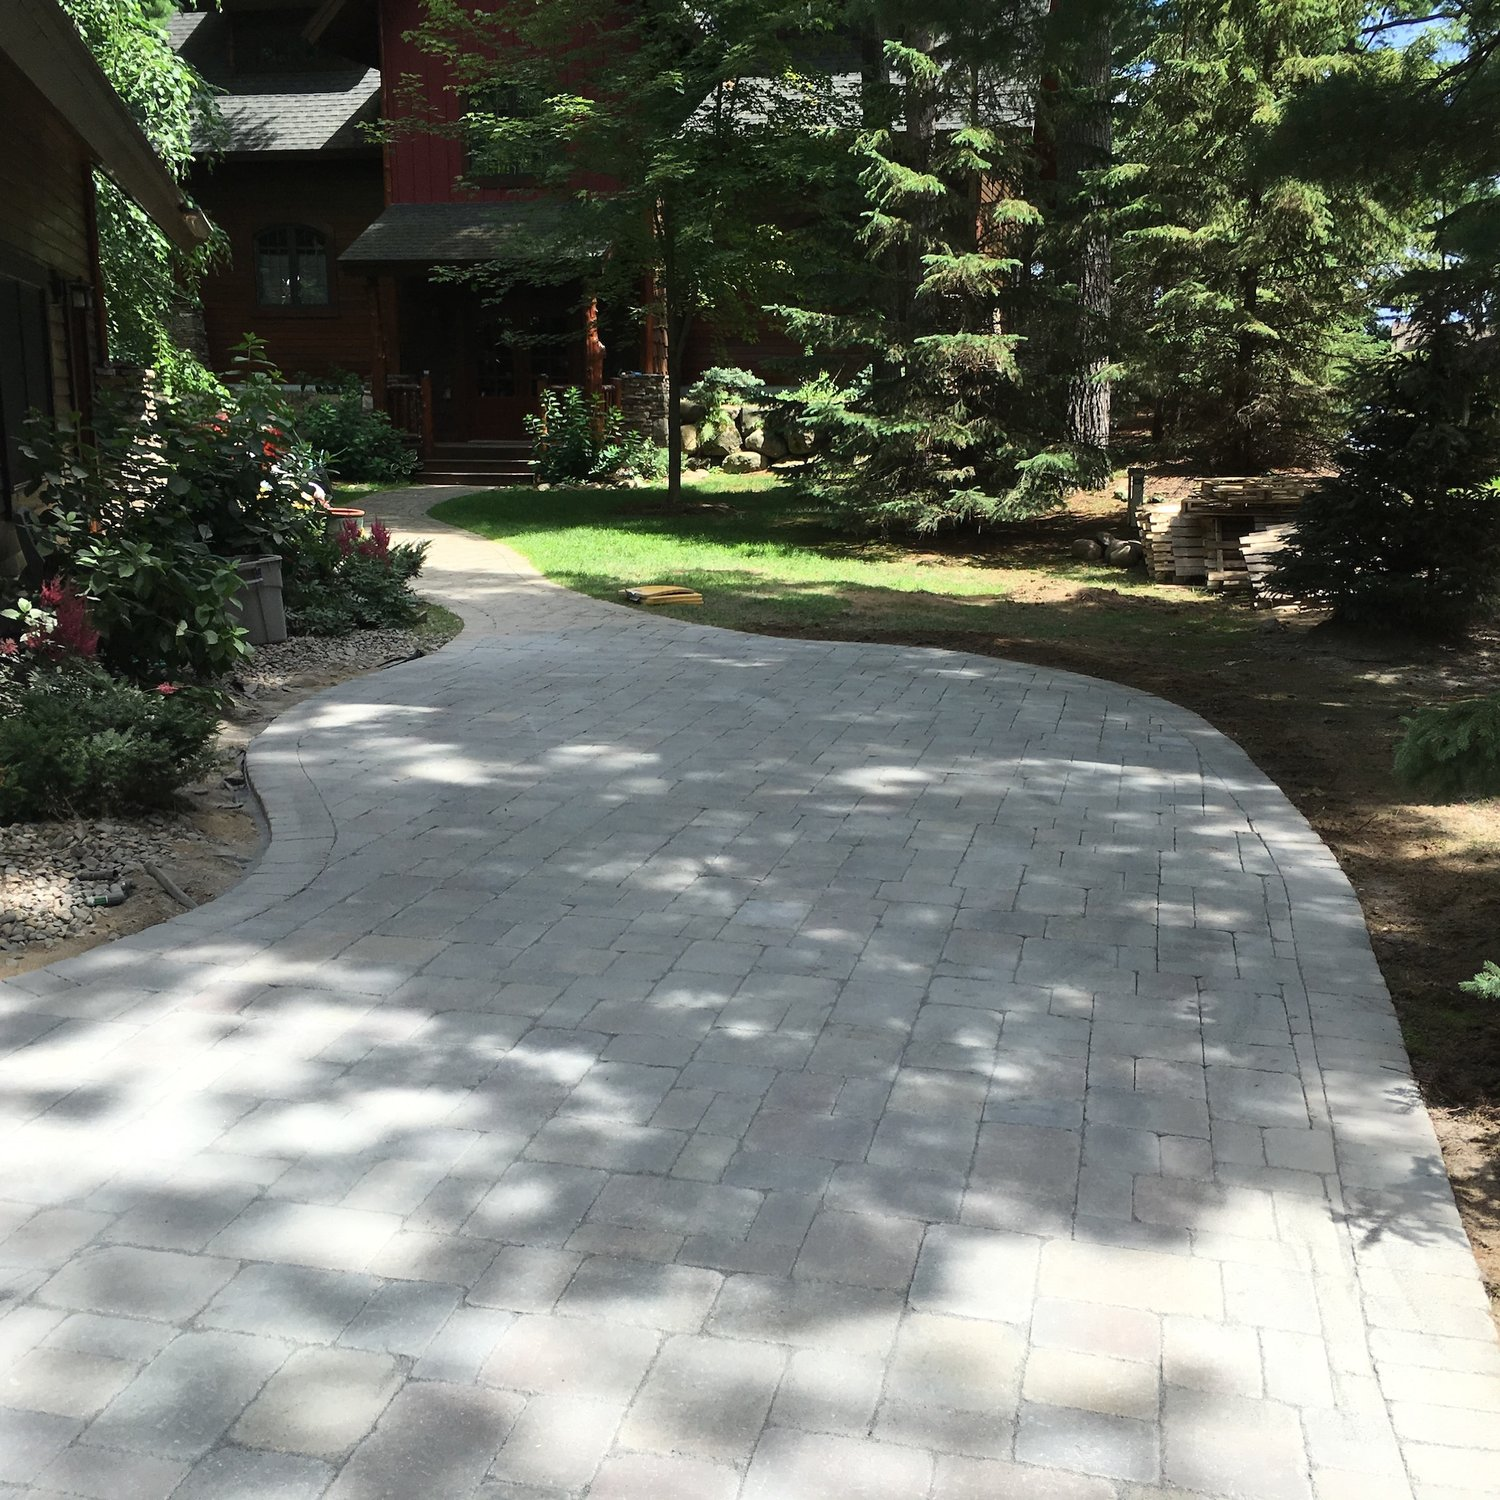 All Pro Landscaping. Services Project Gallery Contact Us - All Pro Landscaping All Pro Landscaping